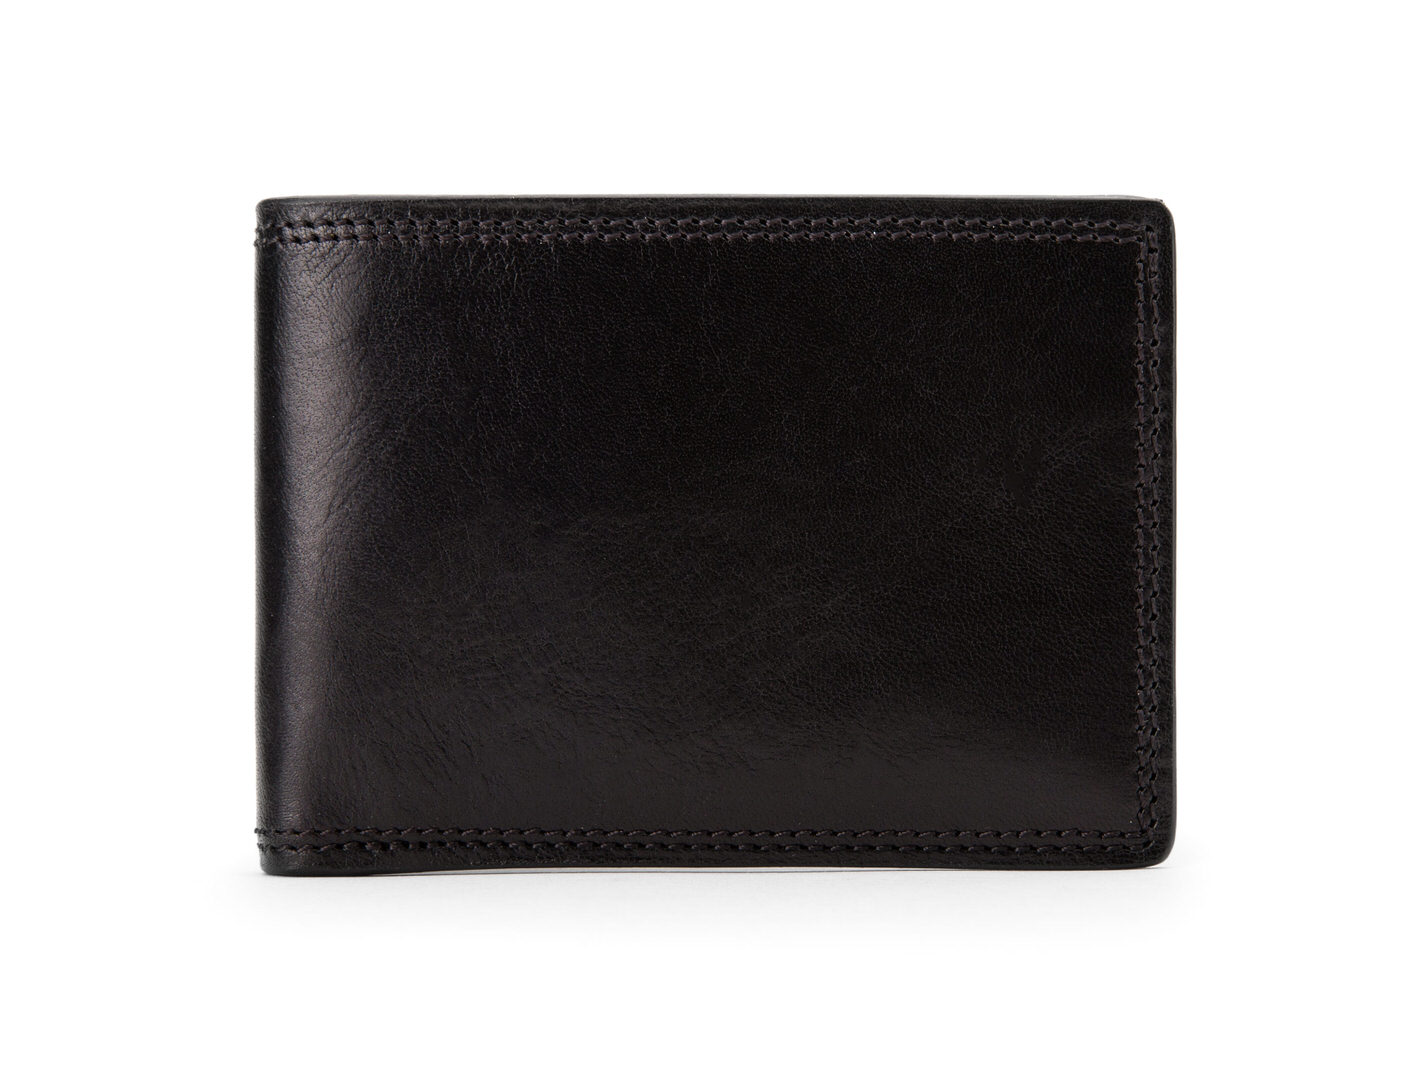 Small Bifold Wallet-219 Black - 219 Black